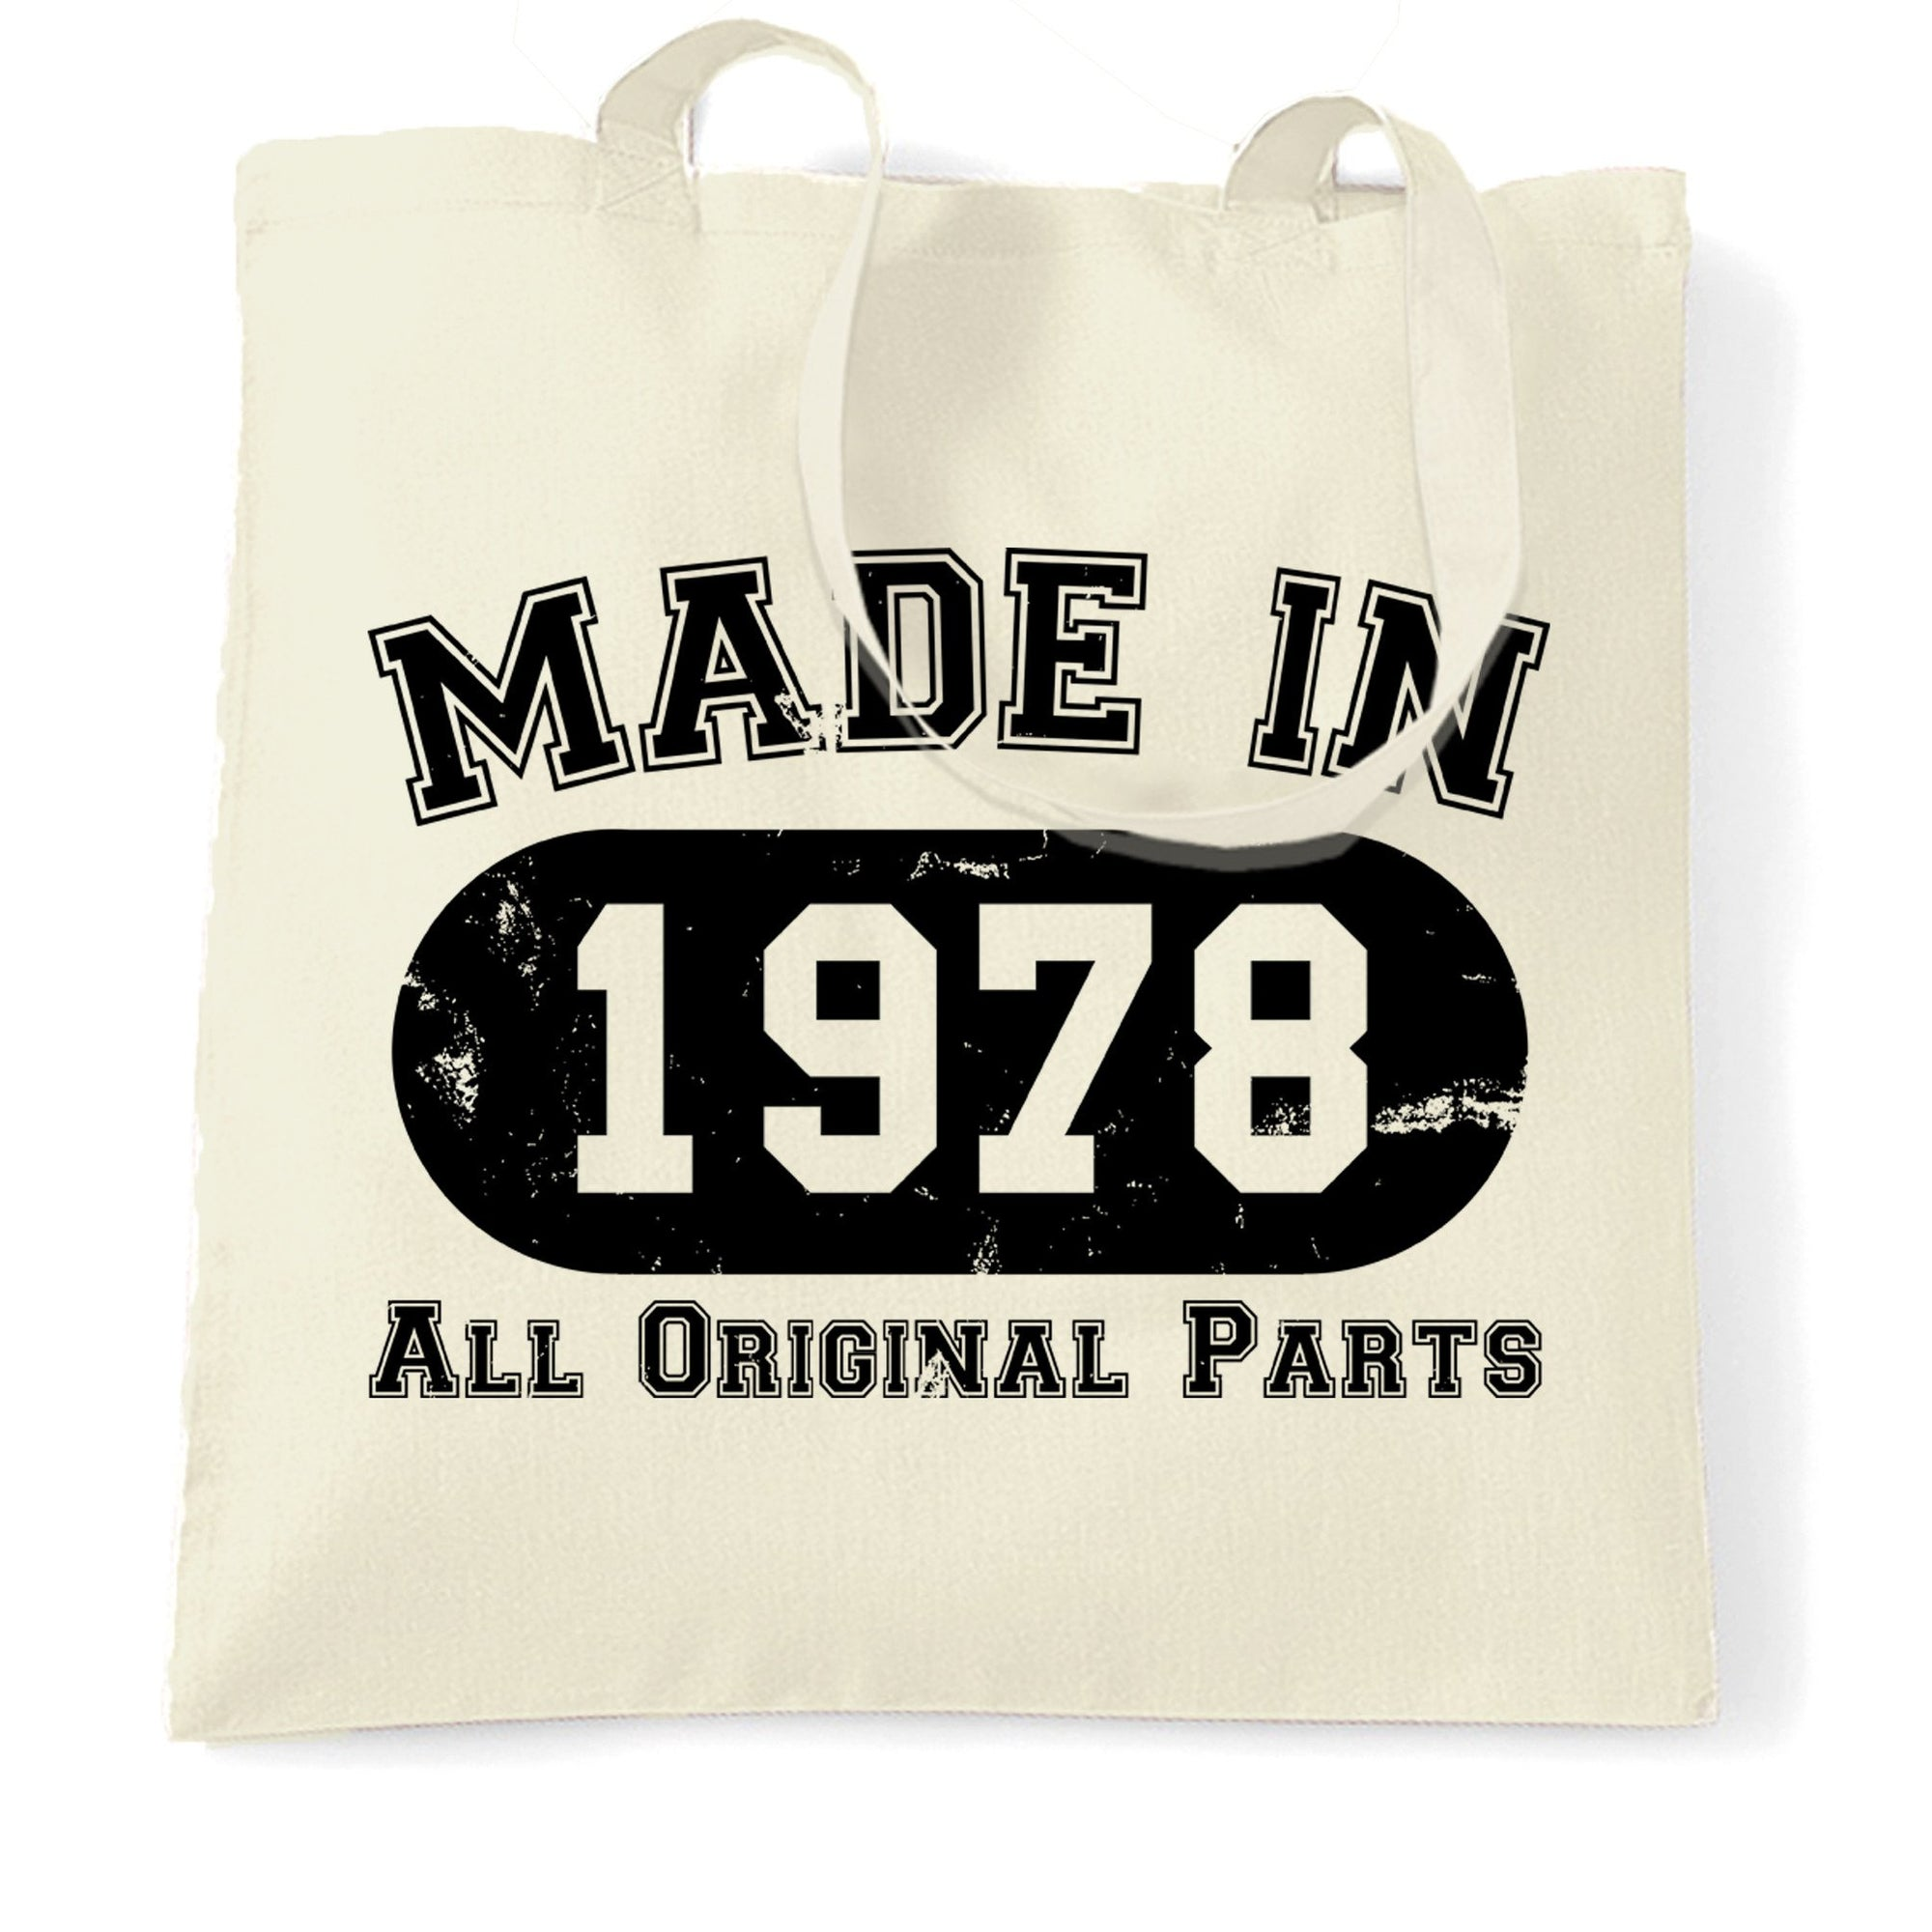 Made in 1978 All Original Parts Tote Bag [Distressed]